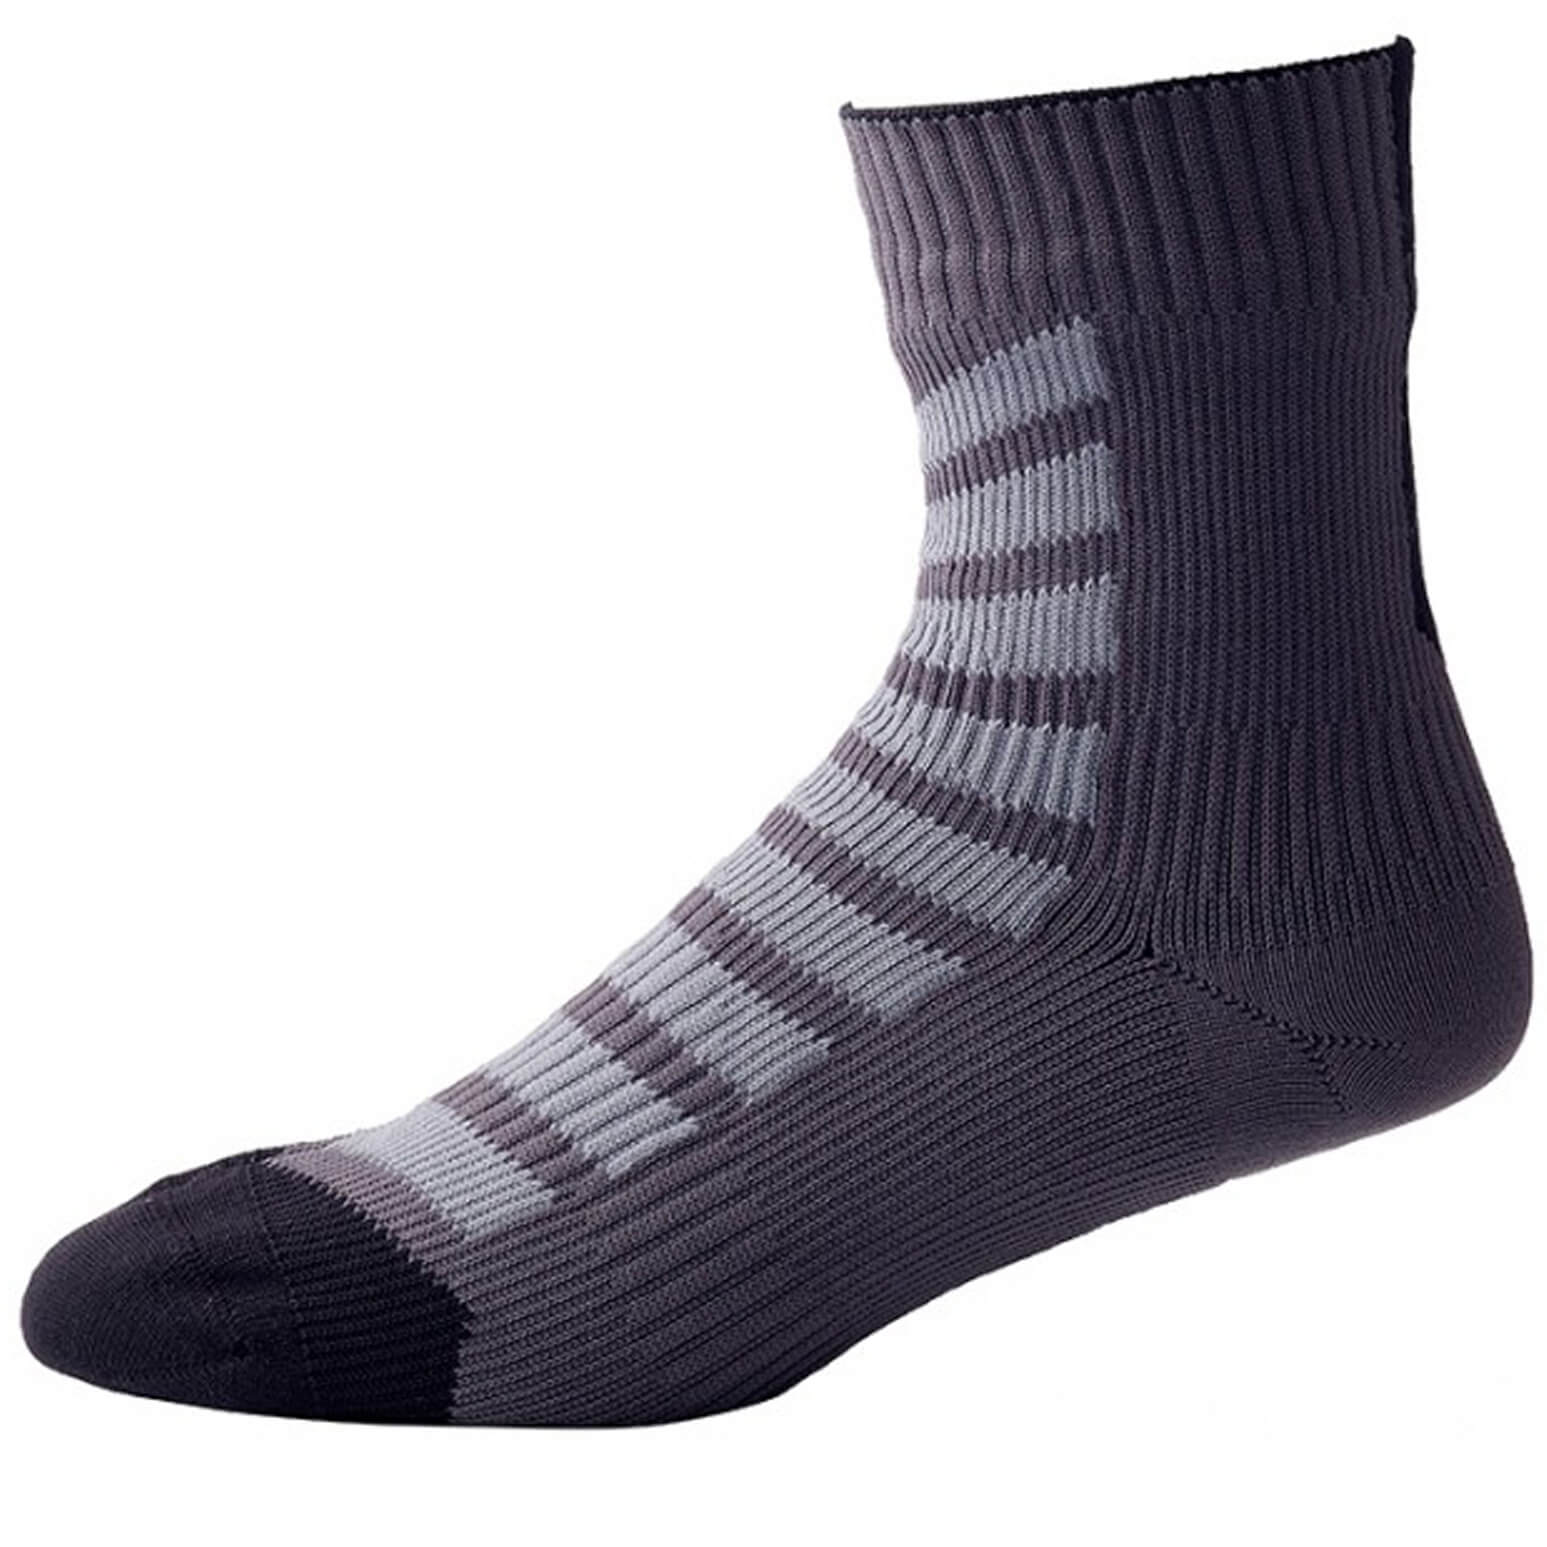 Sealskinz MTB Ankle Socks with Hydrostop - Black/Anthracite